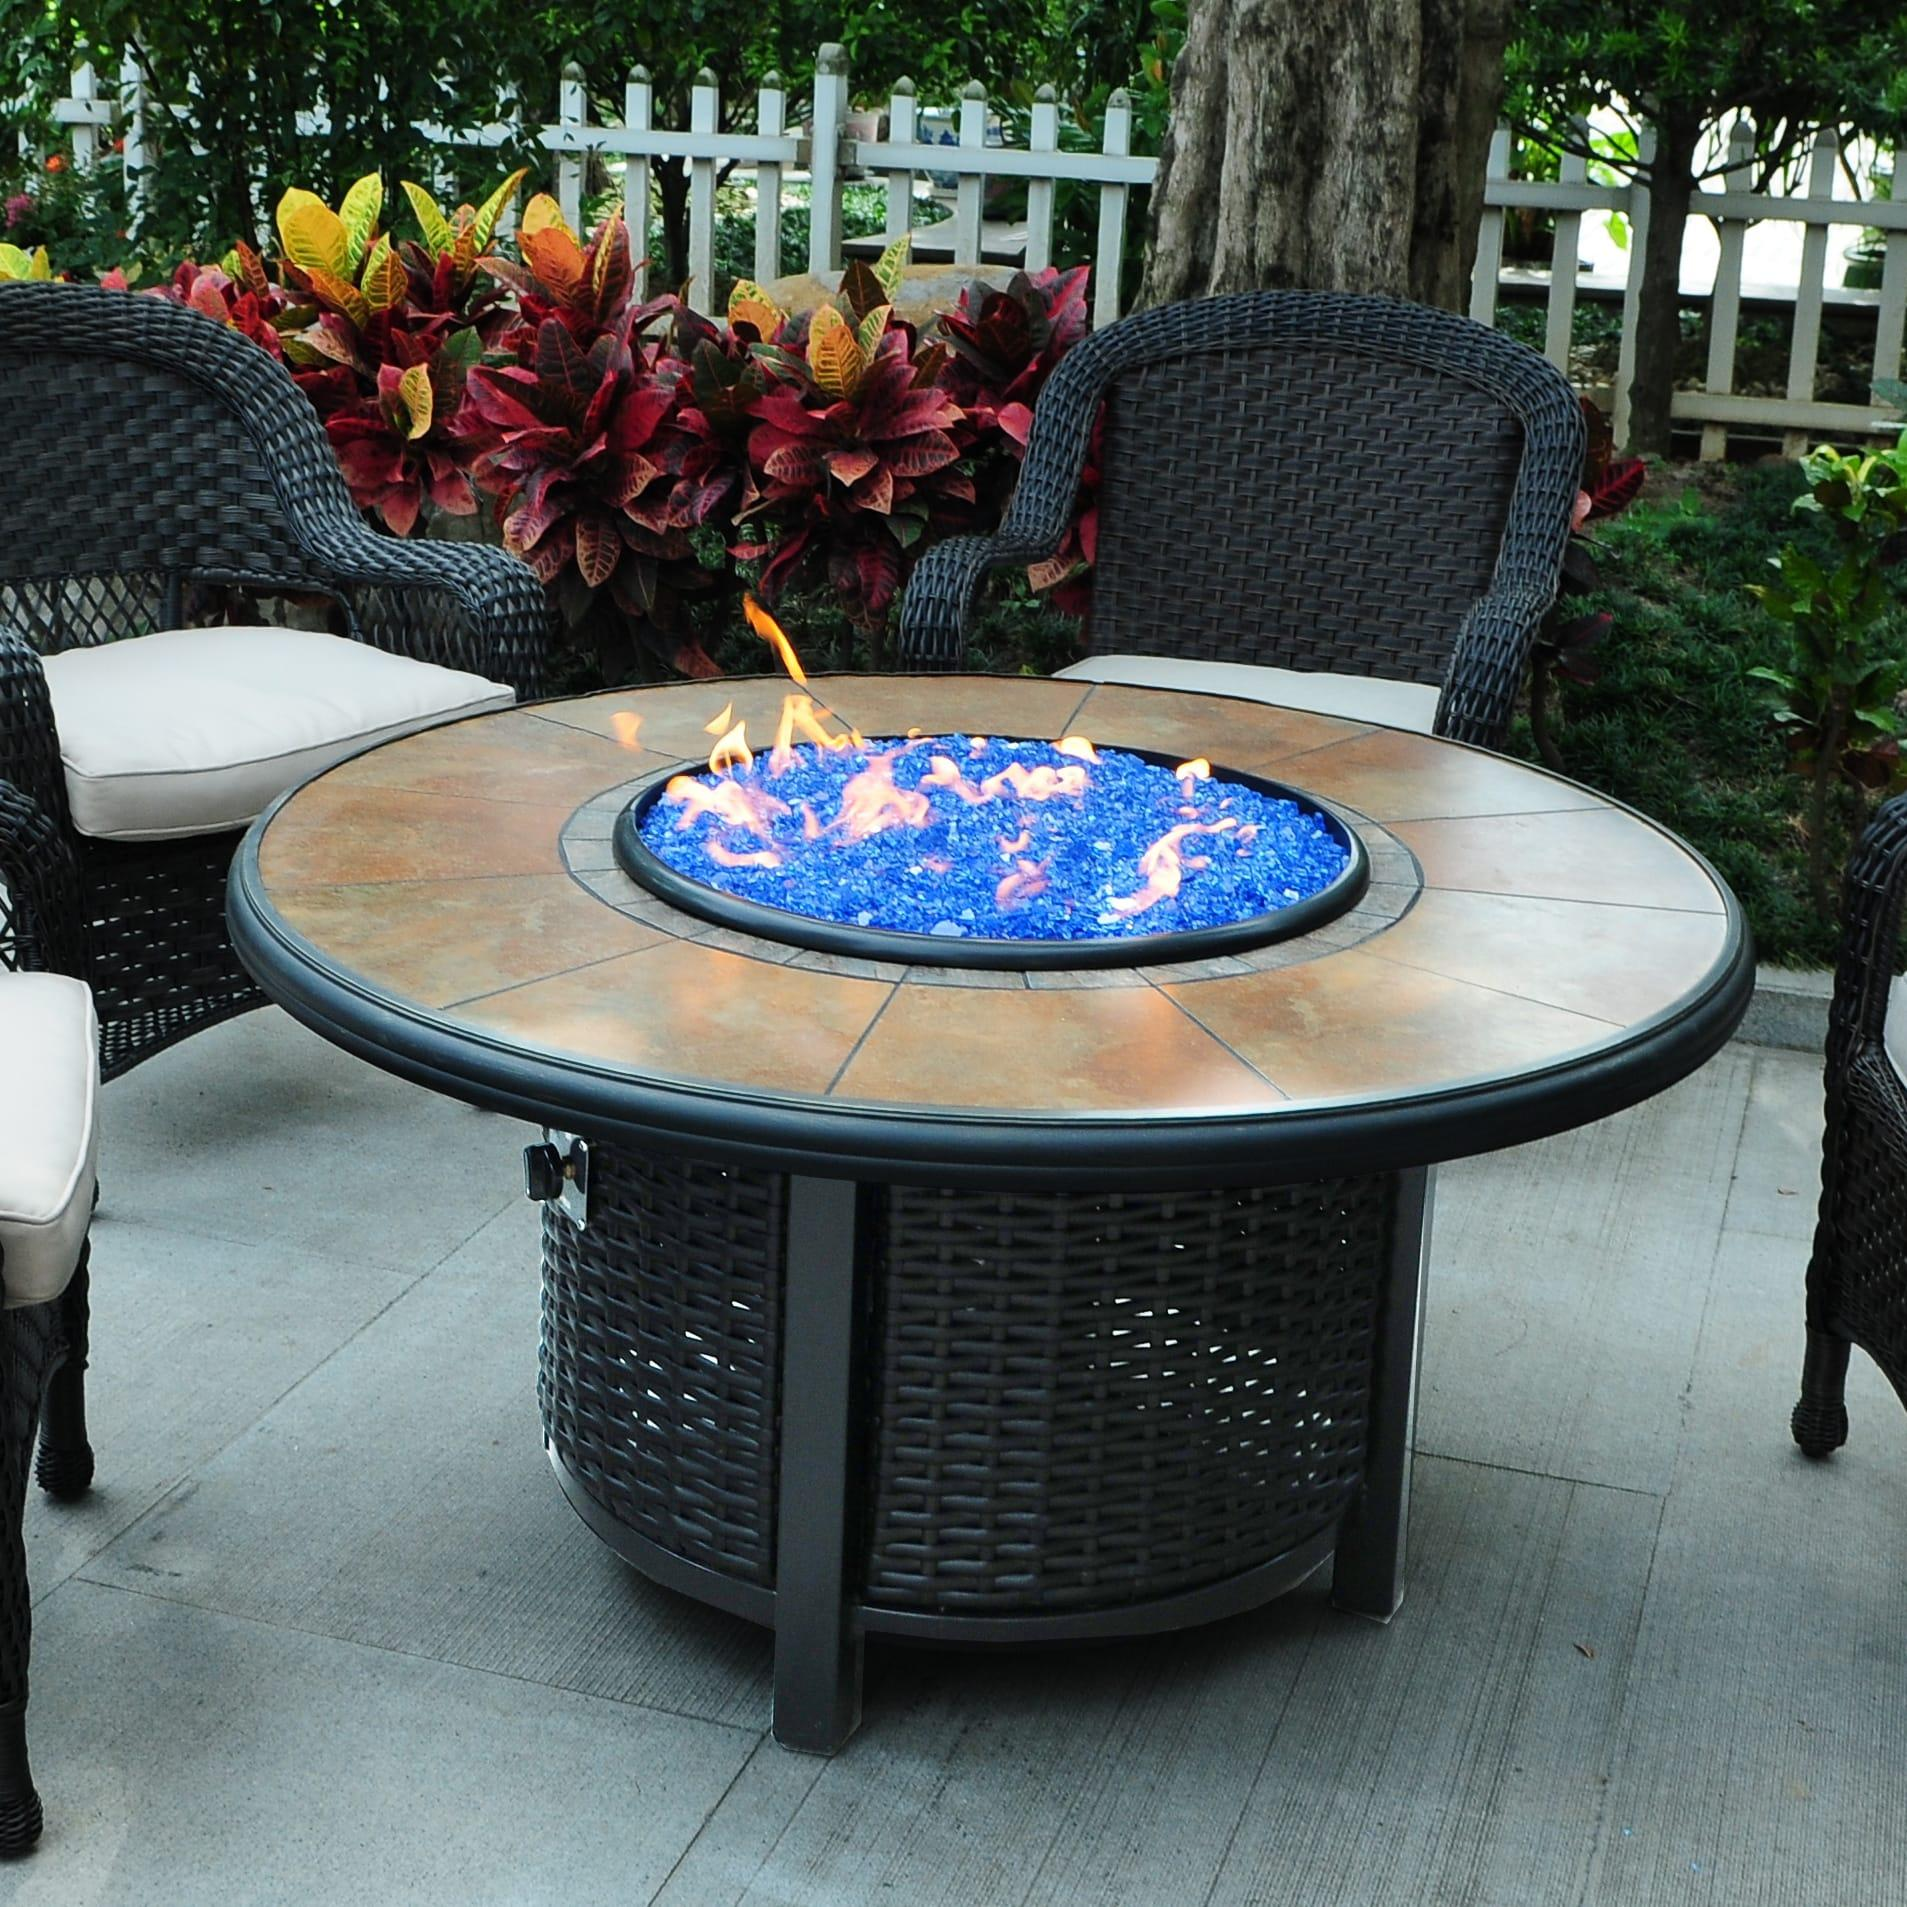 Tretco 48 inch Round Wicker Fire Pit Table-48 inch round wicker fire pit.jpg